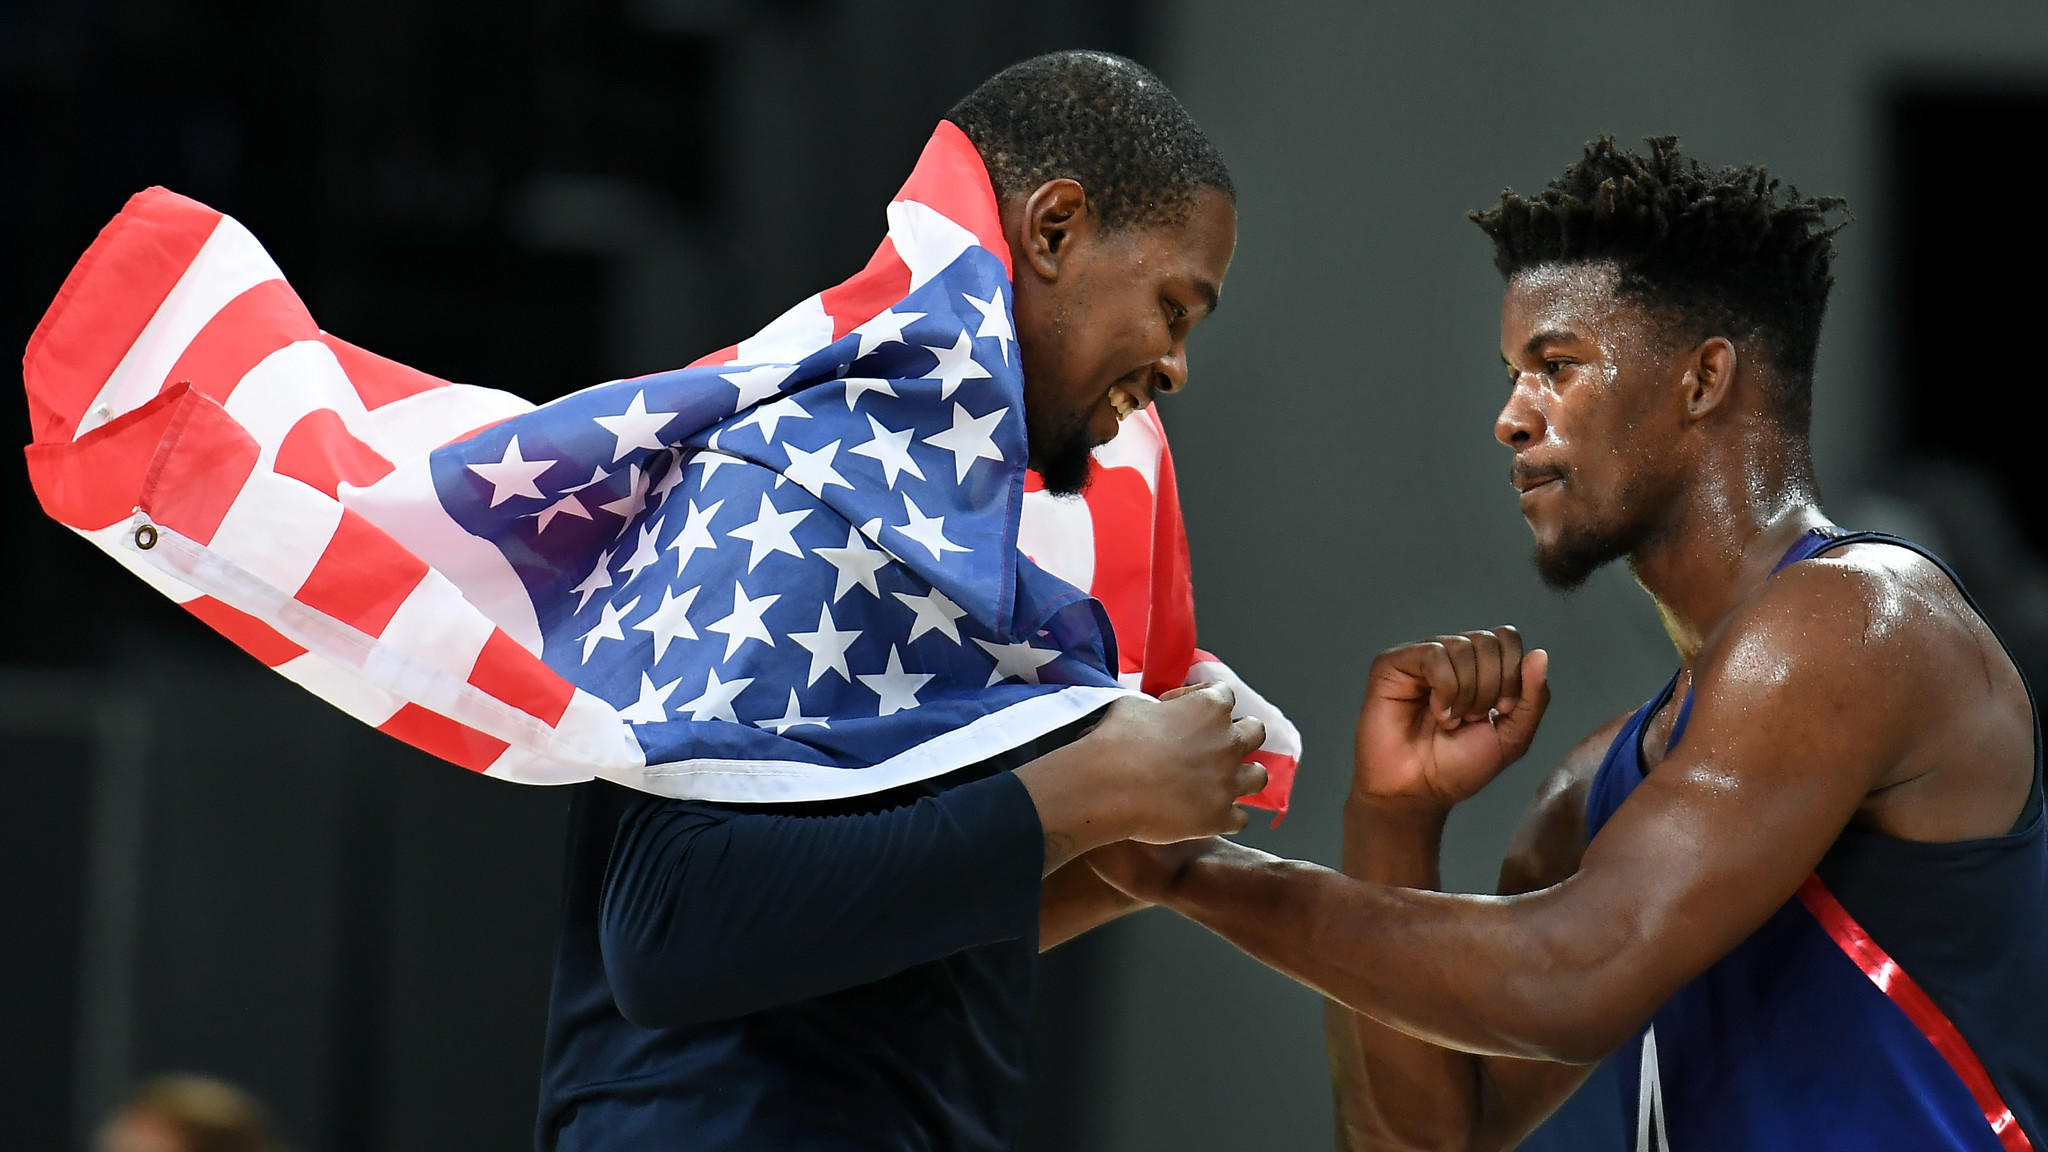 USA's Kevin Durant, left, and Jimmy Butler celebrate after winning the gold medal. (Wally Skalij / Los Angeles Times)